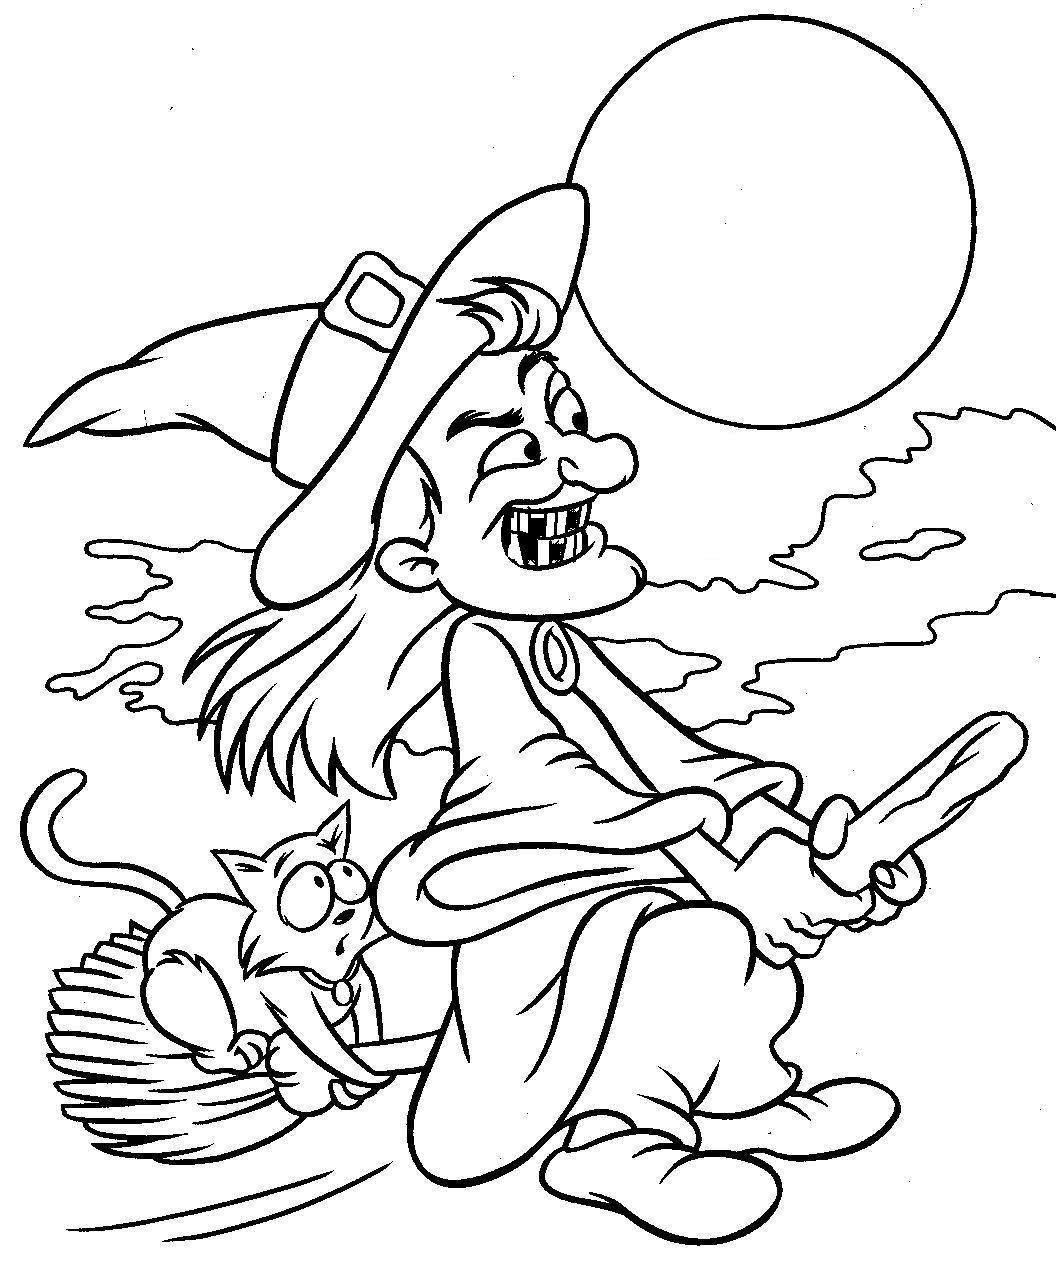 1056x1264 Witch Coloring Pages Scary Witch Coloring Pages Kids Coloring Pages